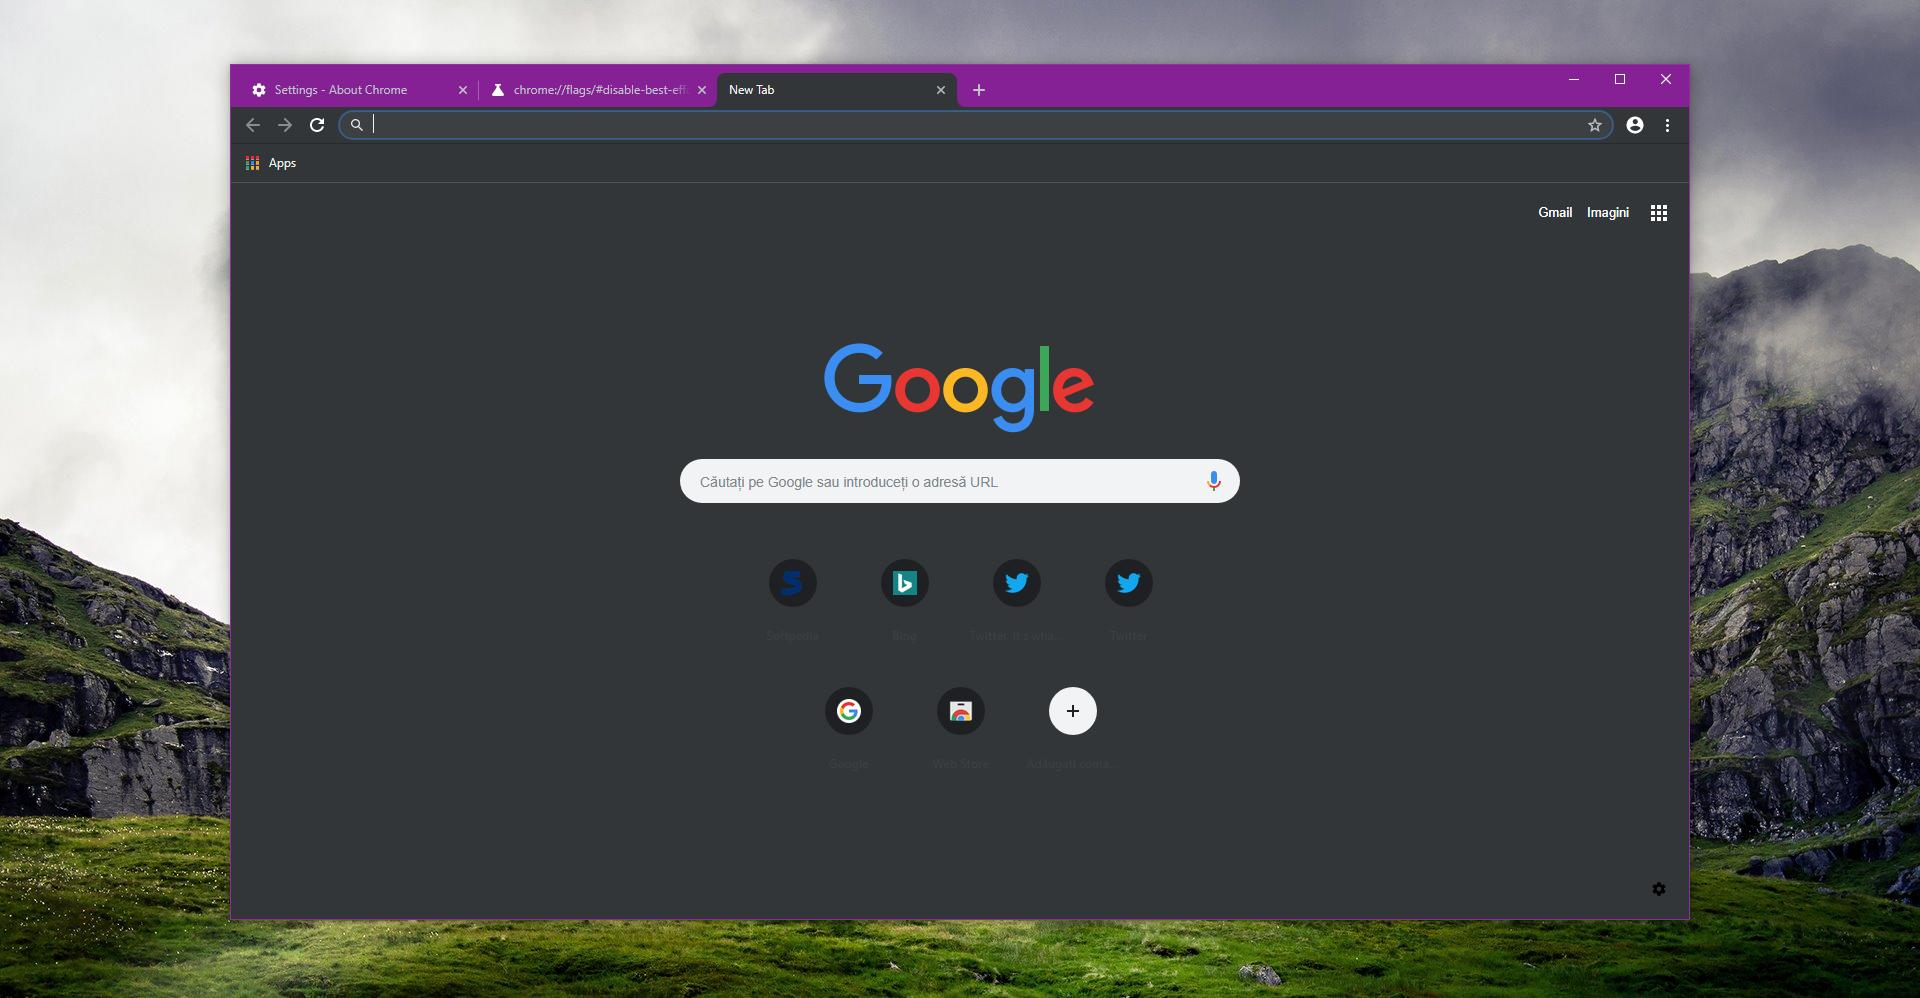 Google release 12 new official themes for the Chrome browser